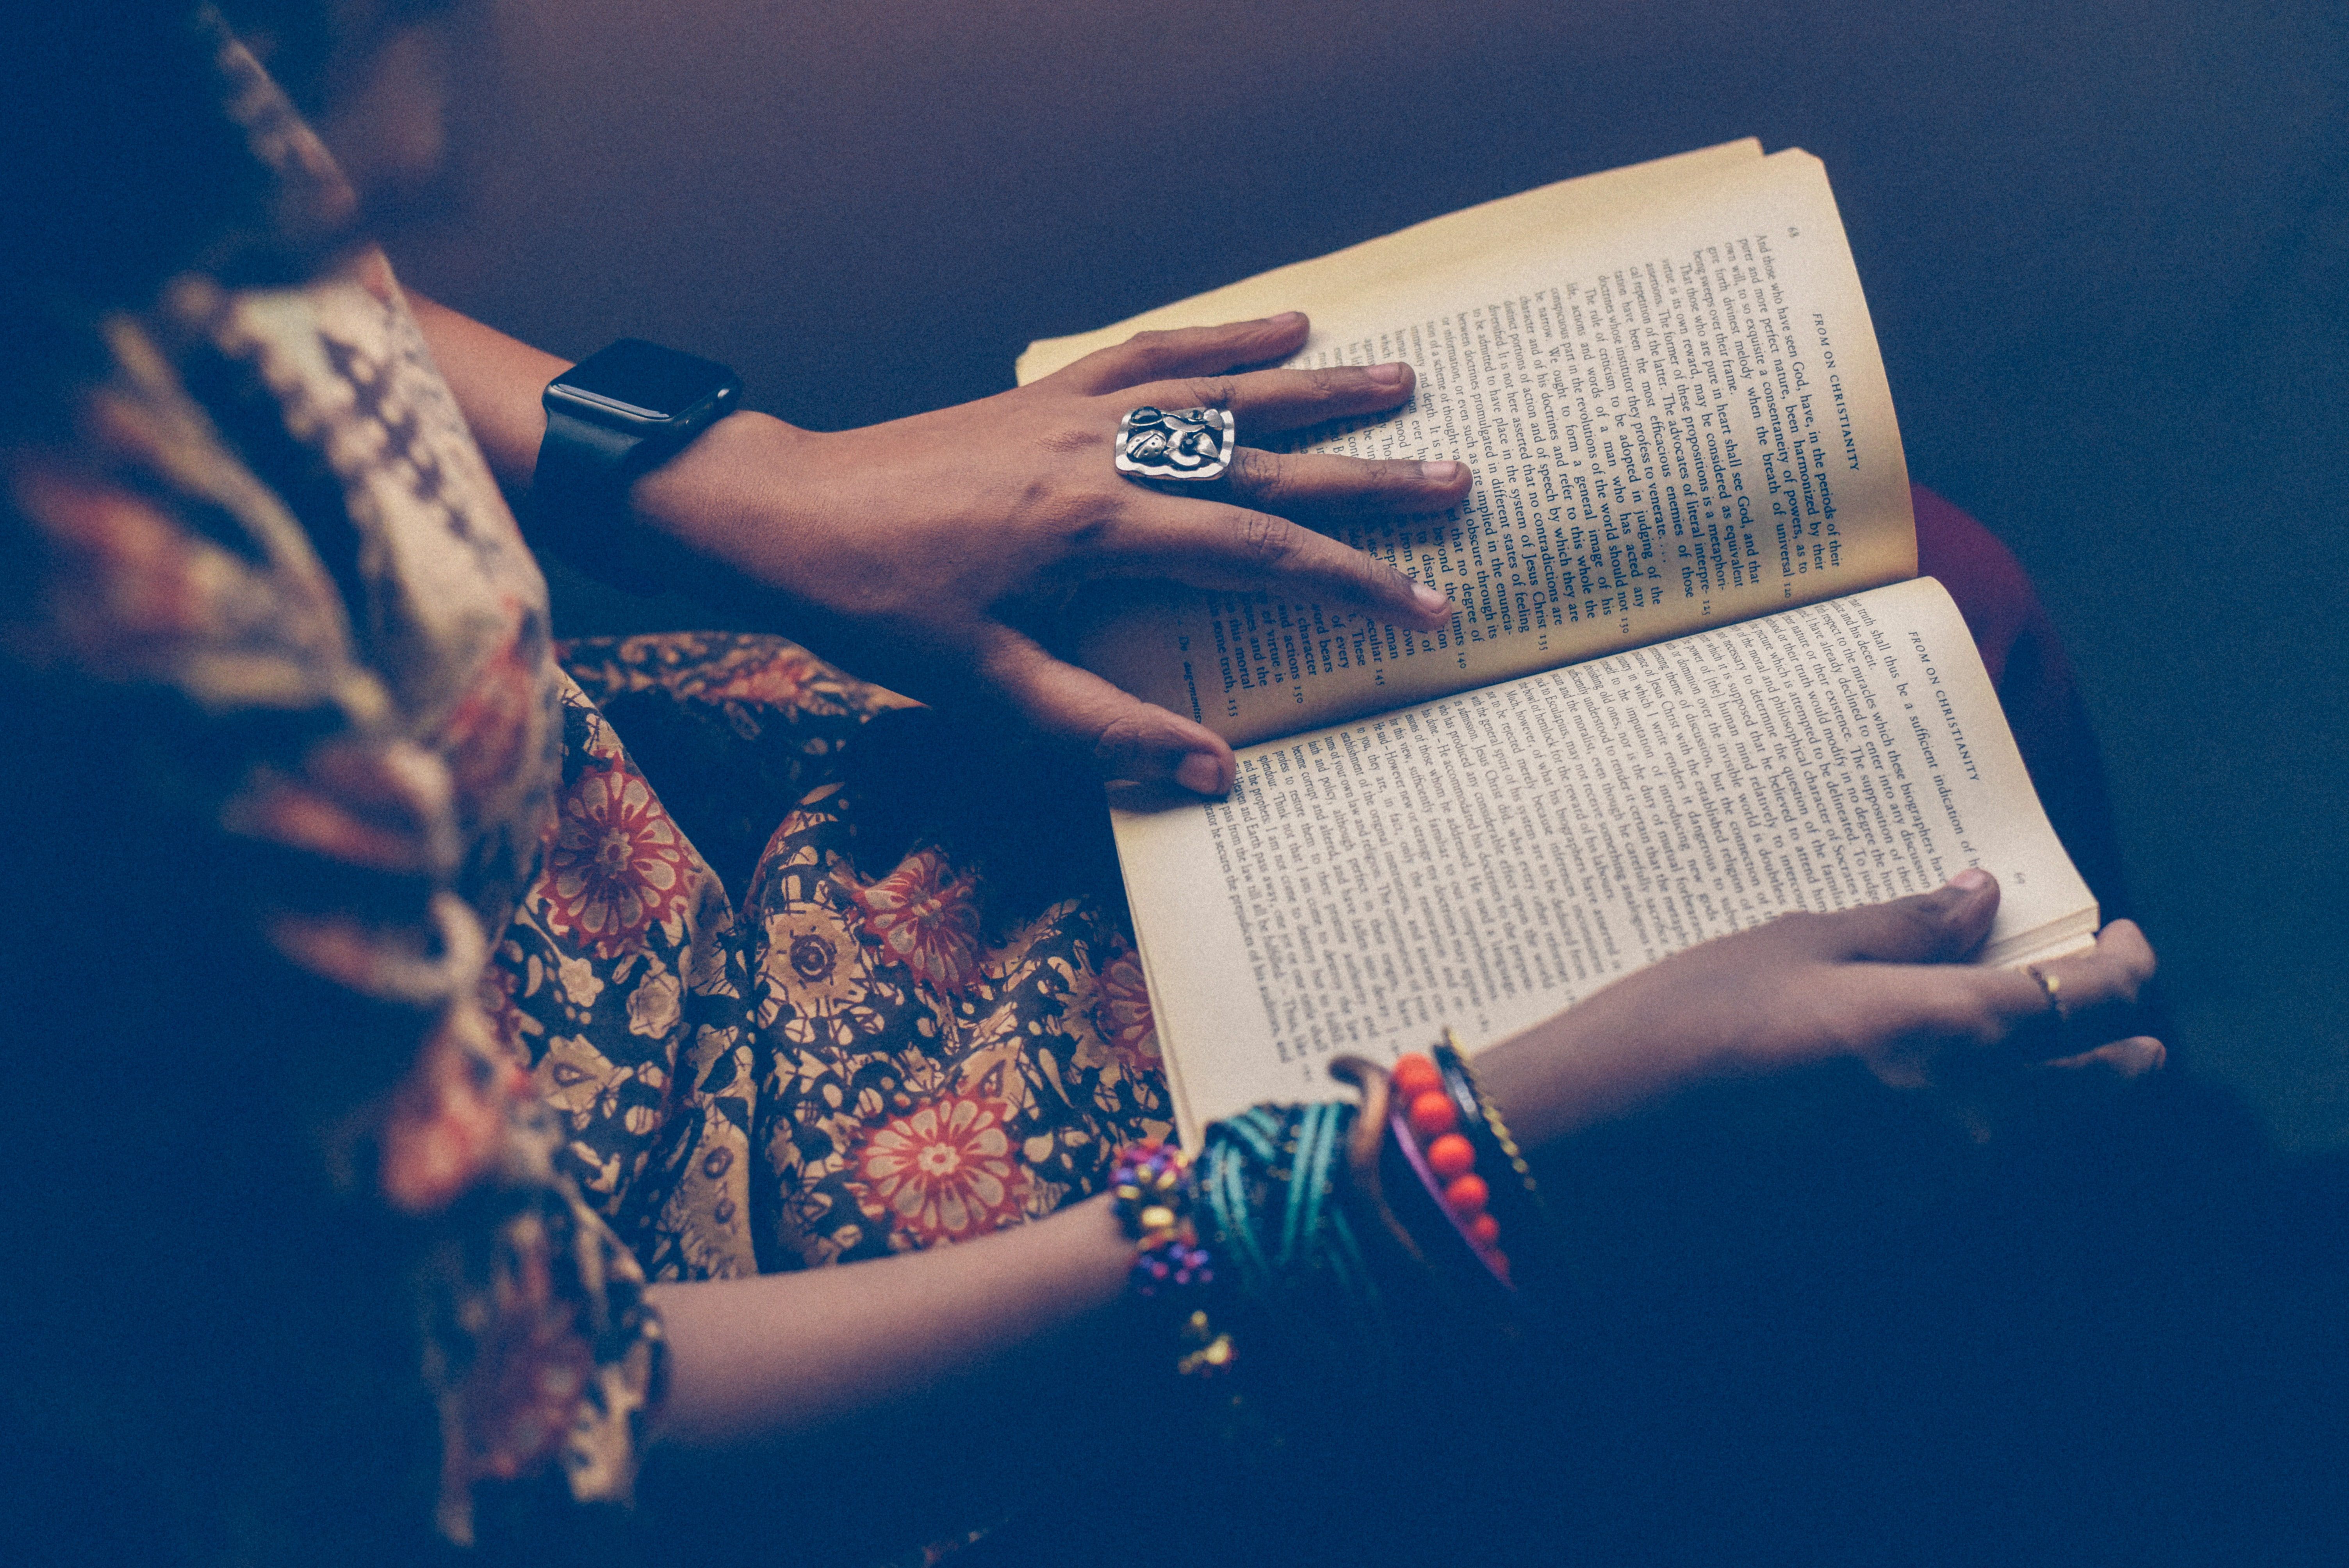 A woman with an Apple Watch and colorful bracelets on her wrists reading a book